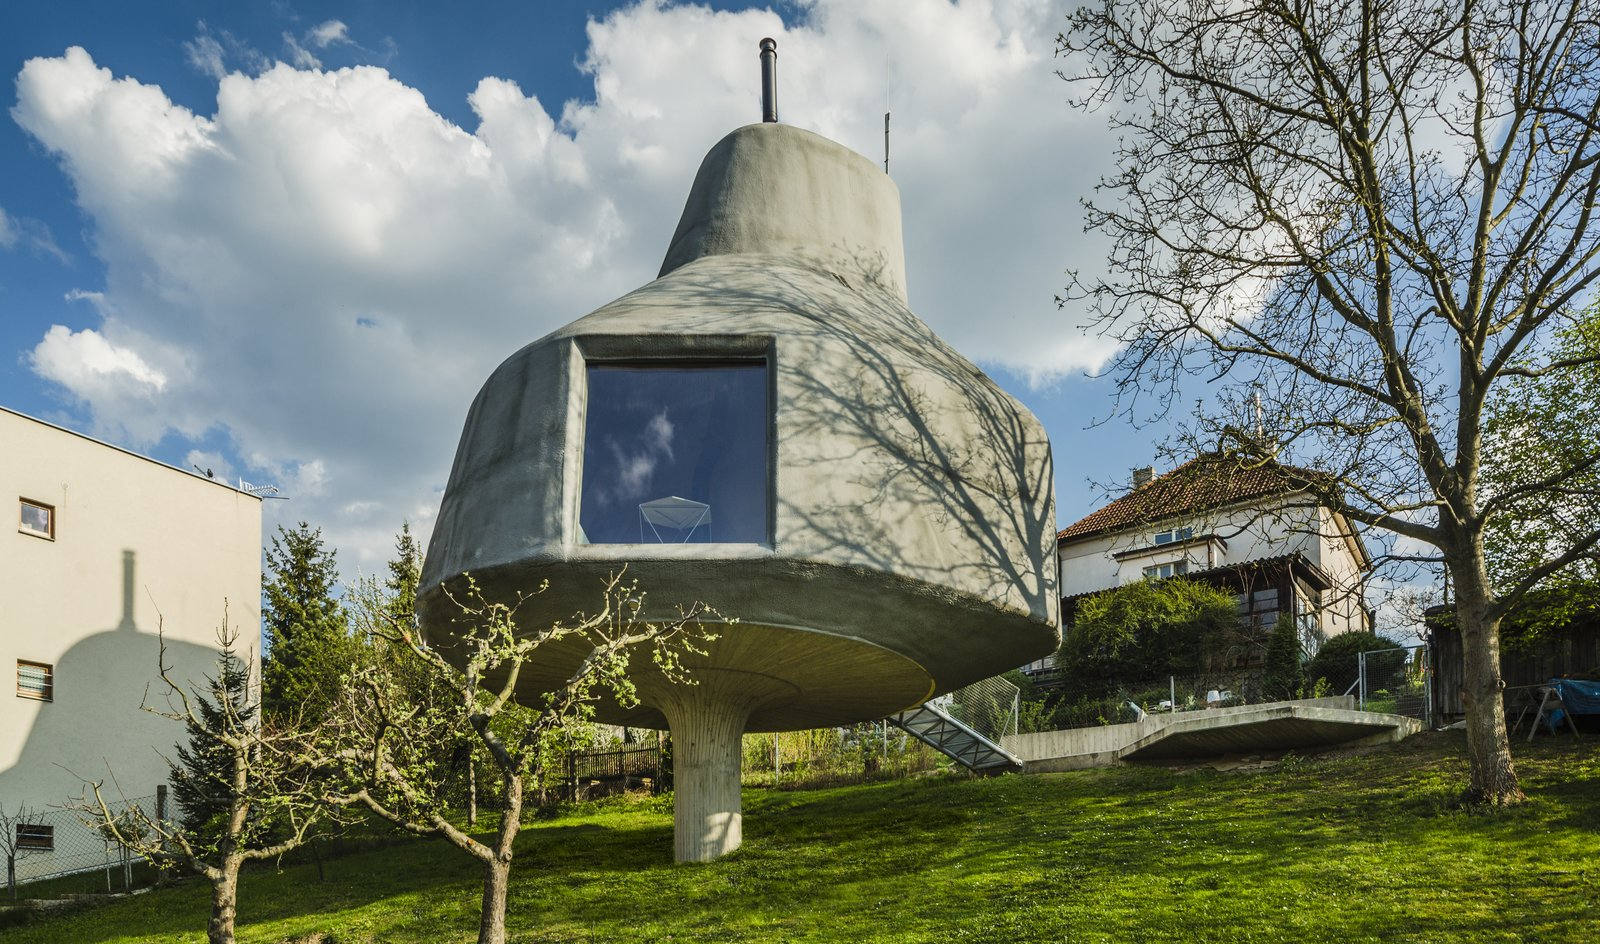 Exterior, Concrete Siding Material, and House Building Type  Best Photos from This Quirky Home in Prague Looks Like a Giant Mushroom